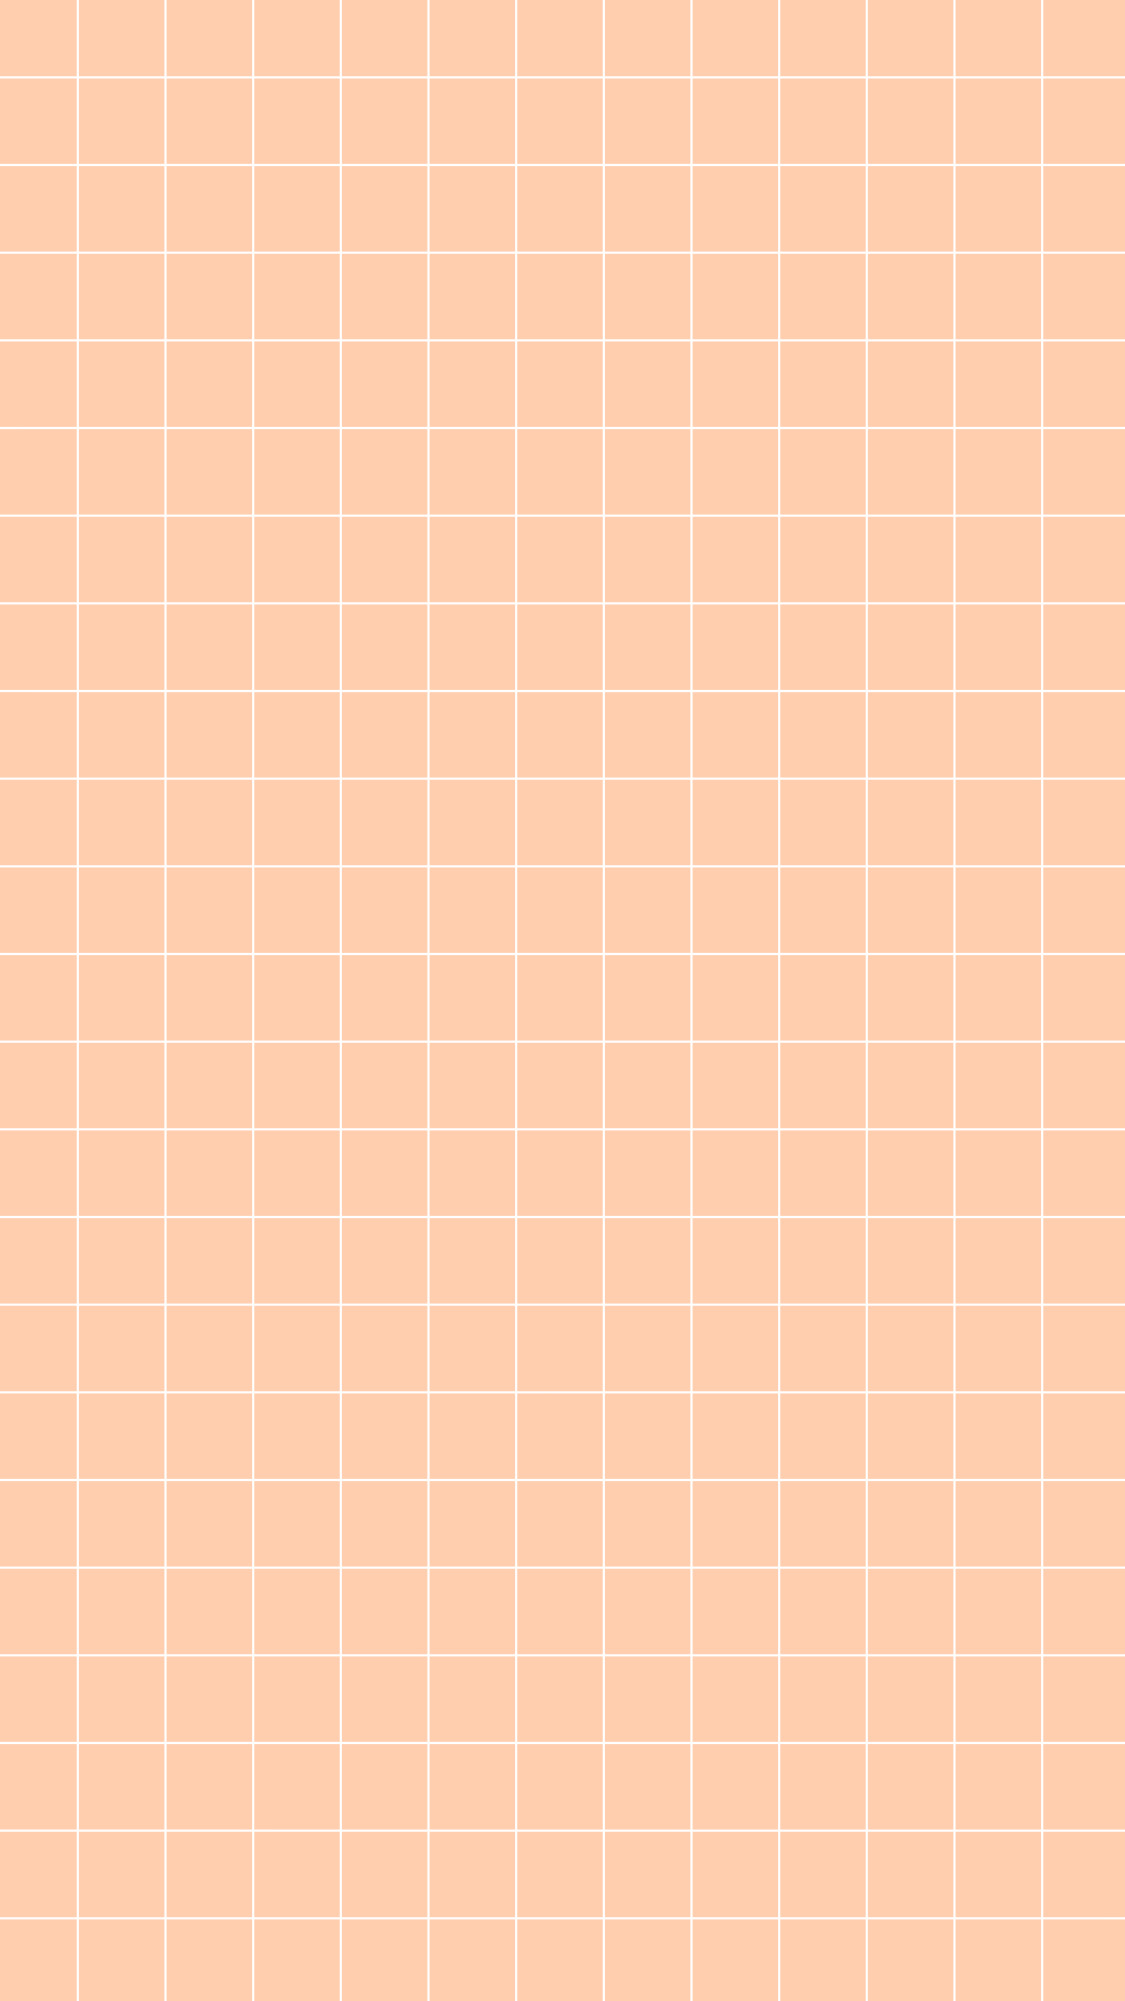 background peach peachbackground image by syd picsart